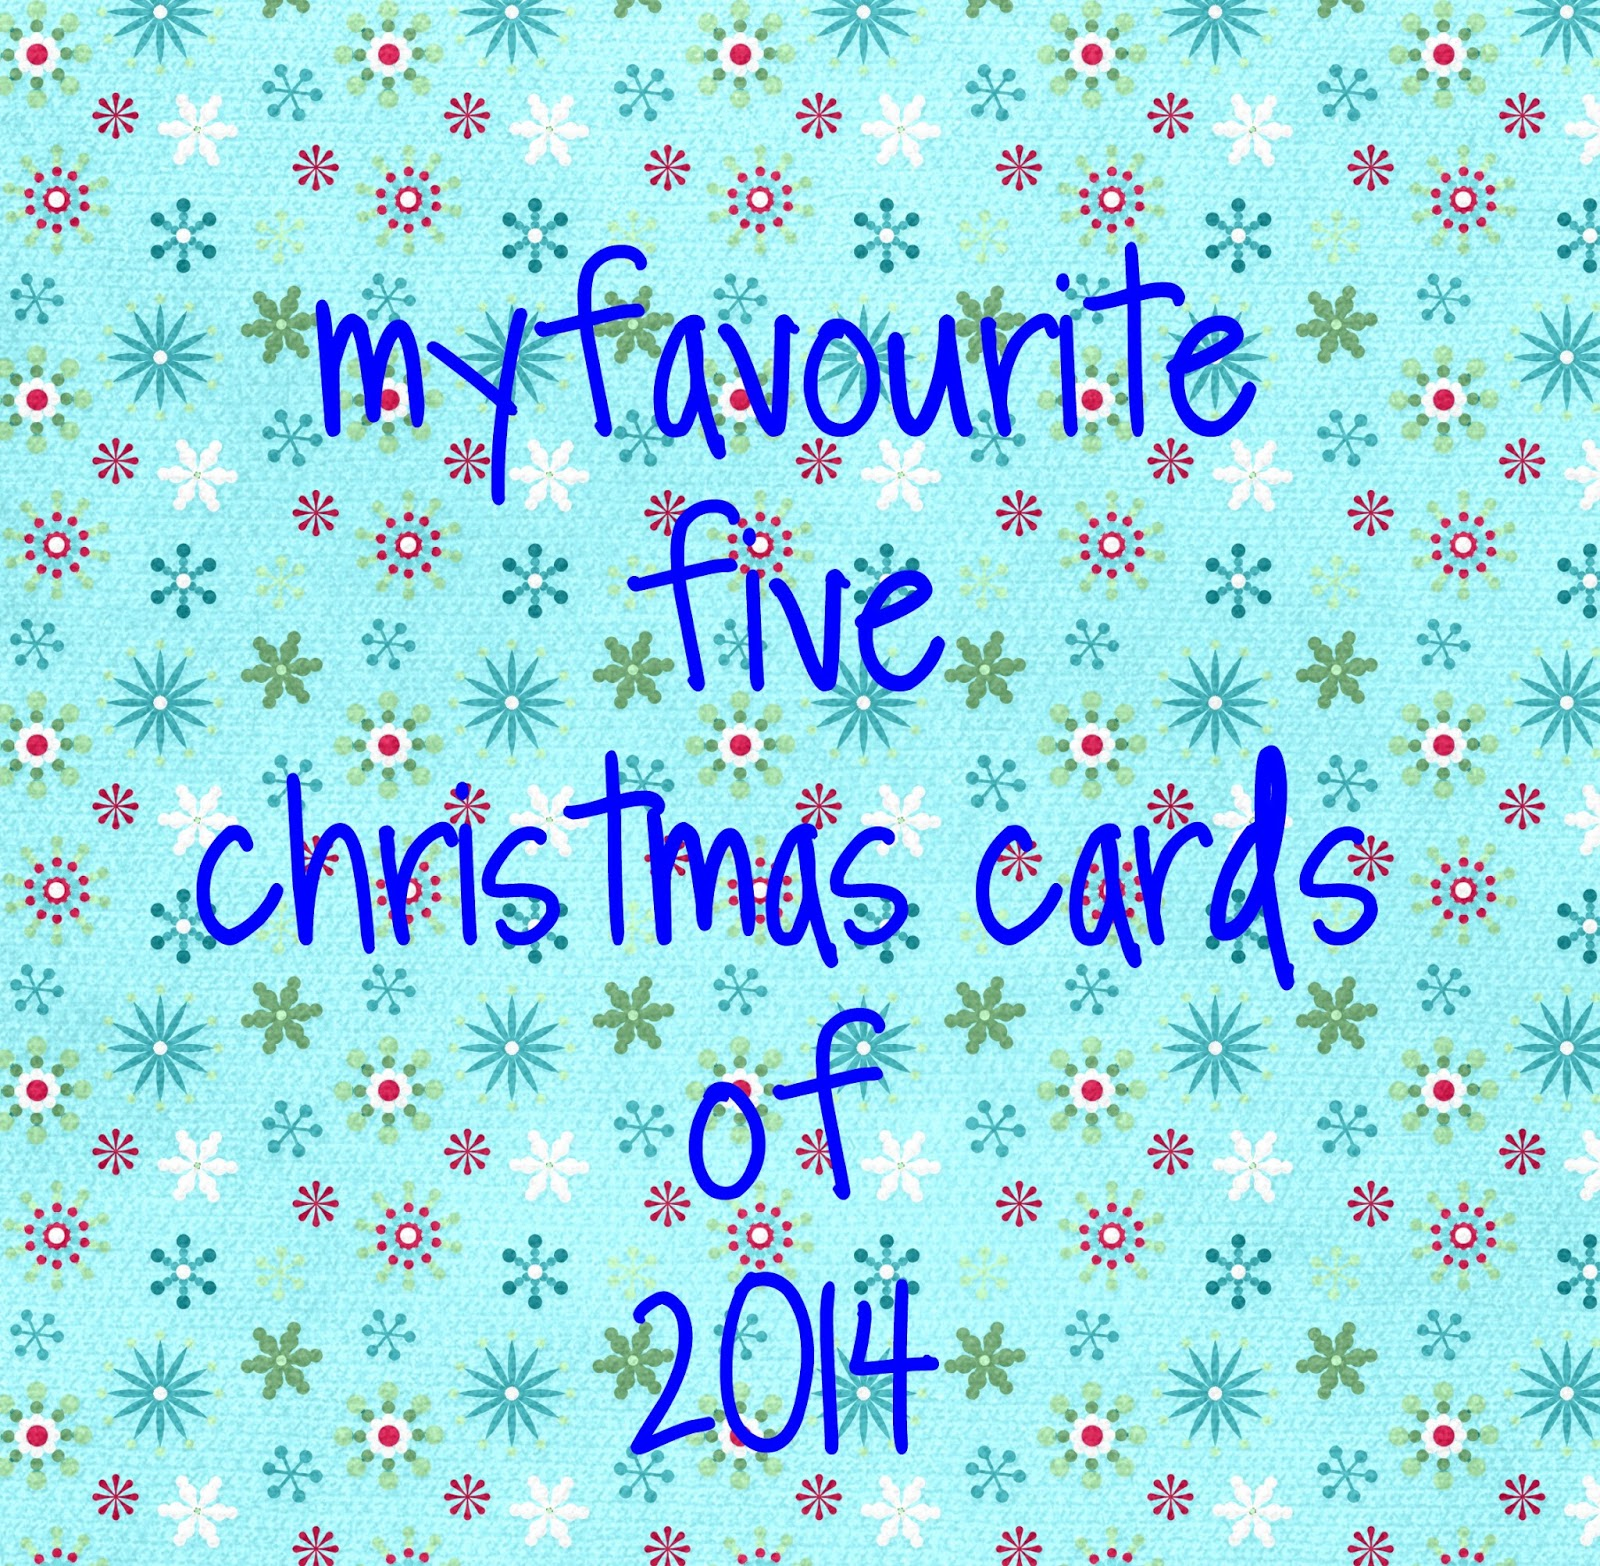 http://debby4000.blogspot.co.uk/2014/12/my-favourite-five-christmas-cards-of.html